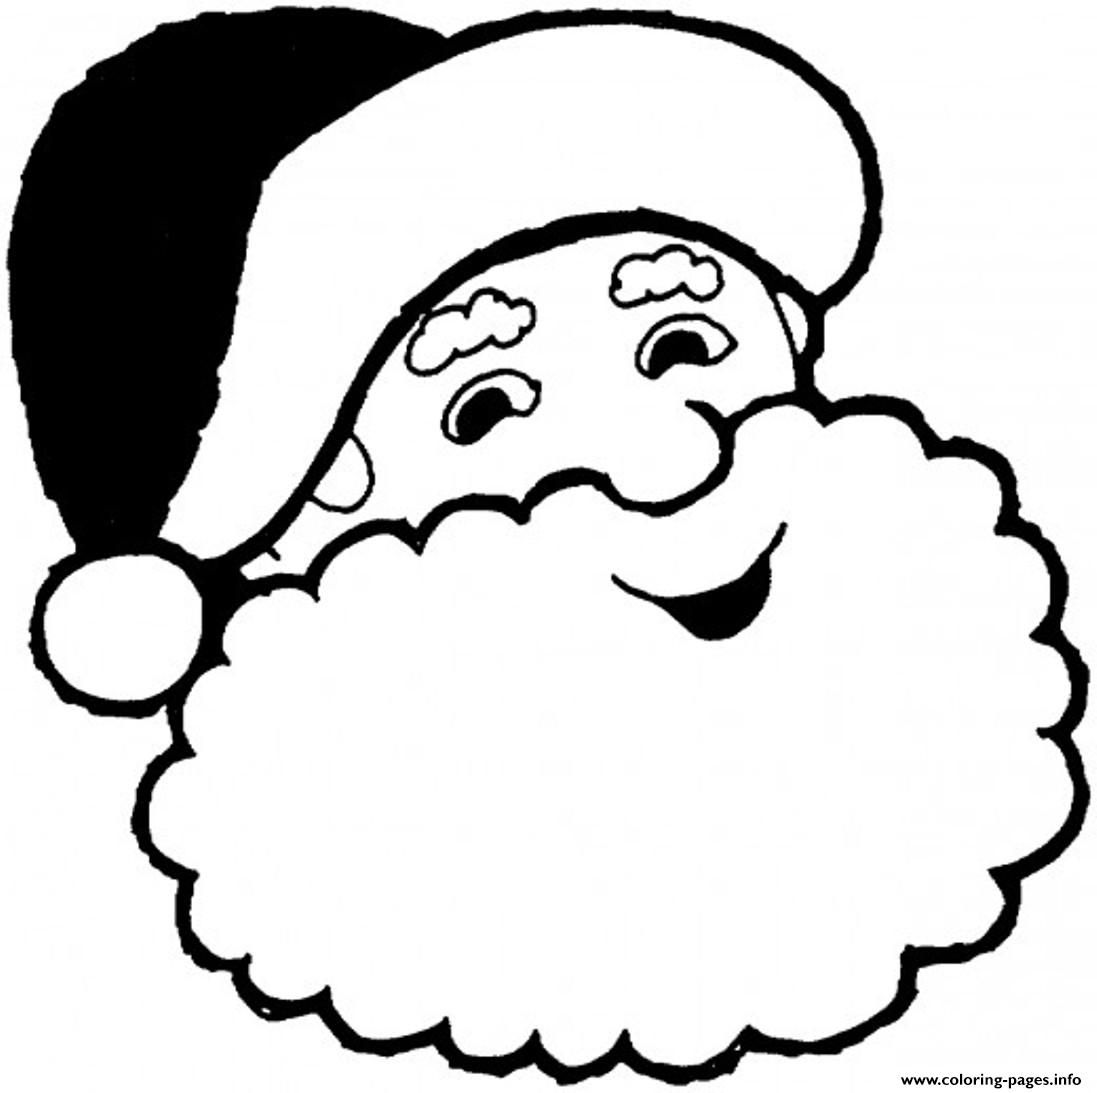 1097x1093 Print Smiling Santa Claus Coloring Pages Free Christmas